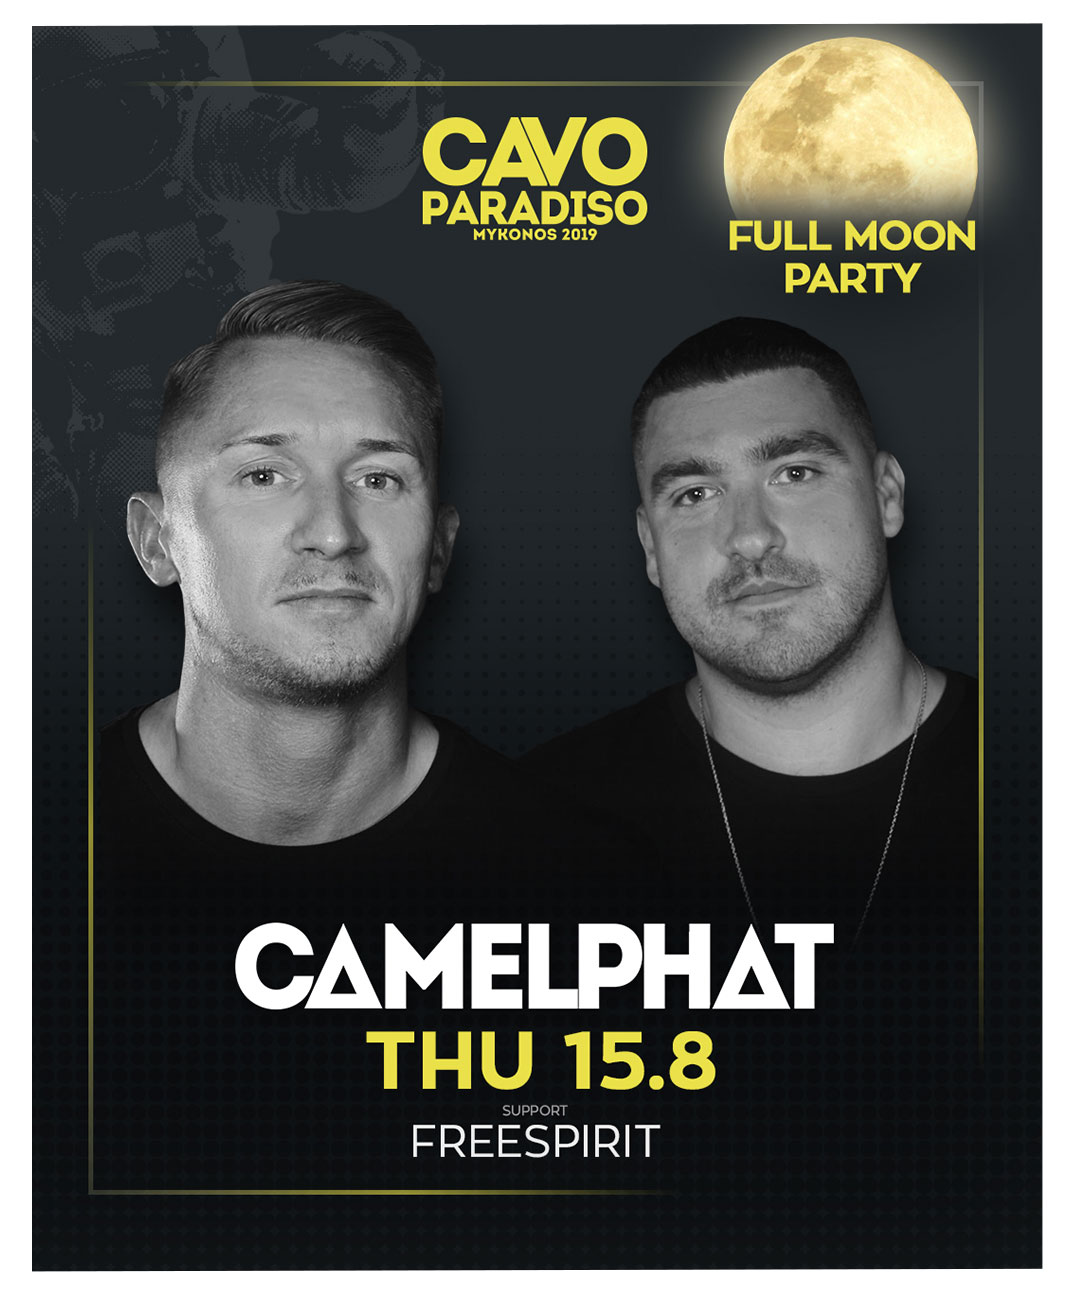 FULL MOON w/ Camelphat & support by Freespirit